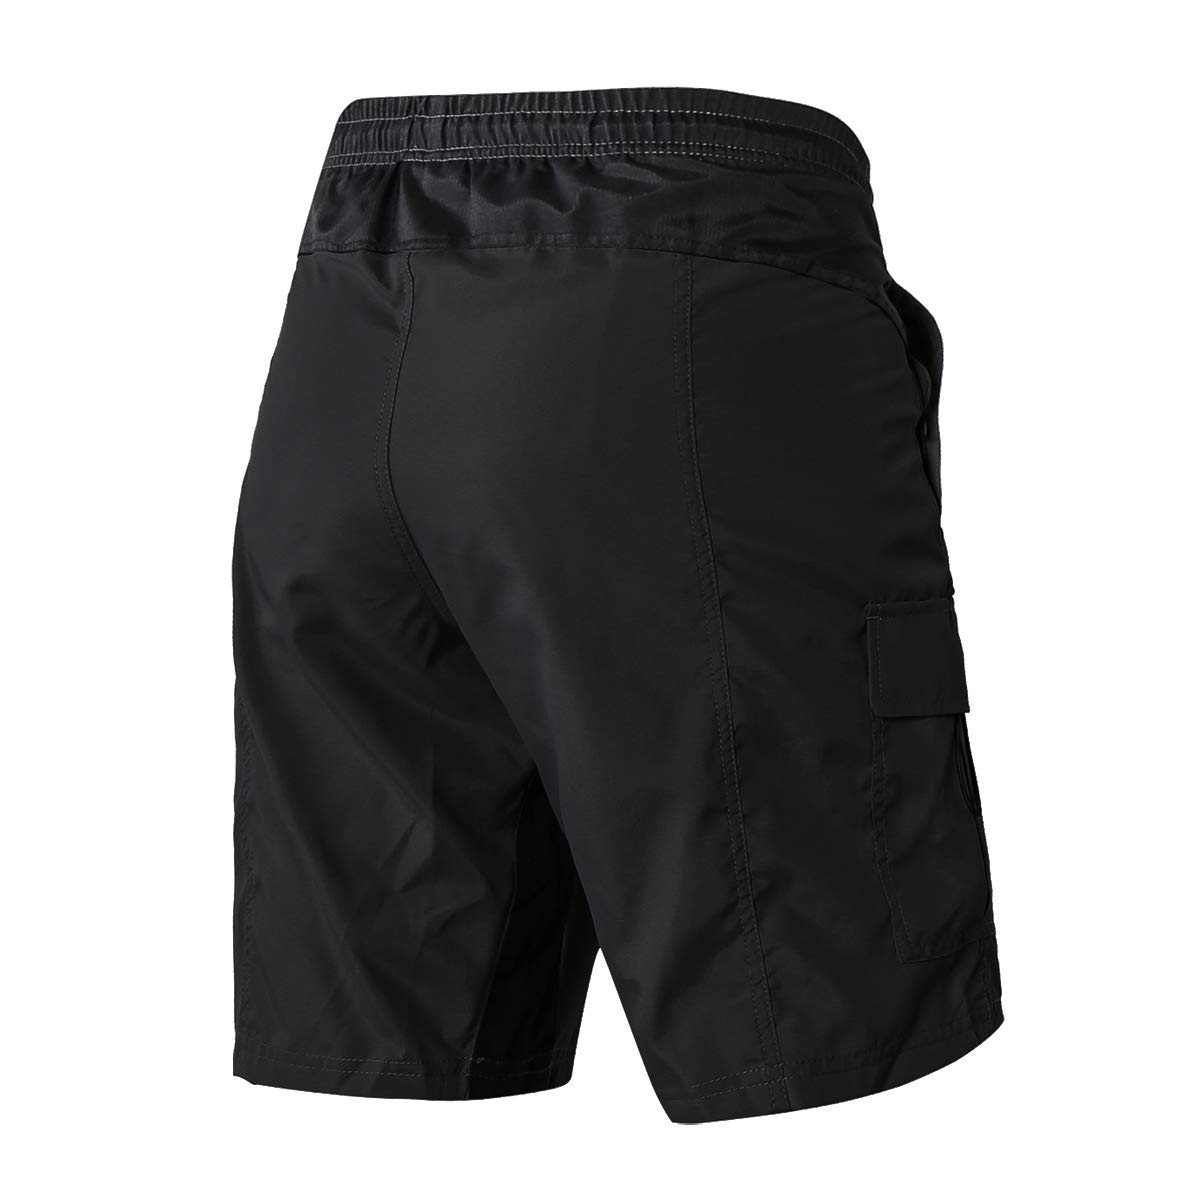 EZRUN Men's 3D Padded Mountain Bike Shorts Lightweight MTB Cycling Shorts (Black,XXL) by EZRUN (Image #2)